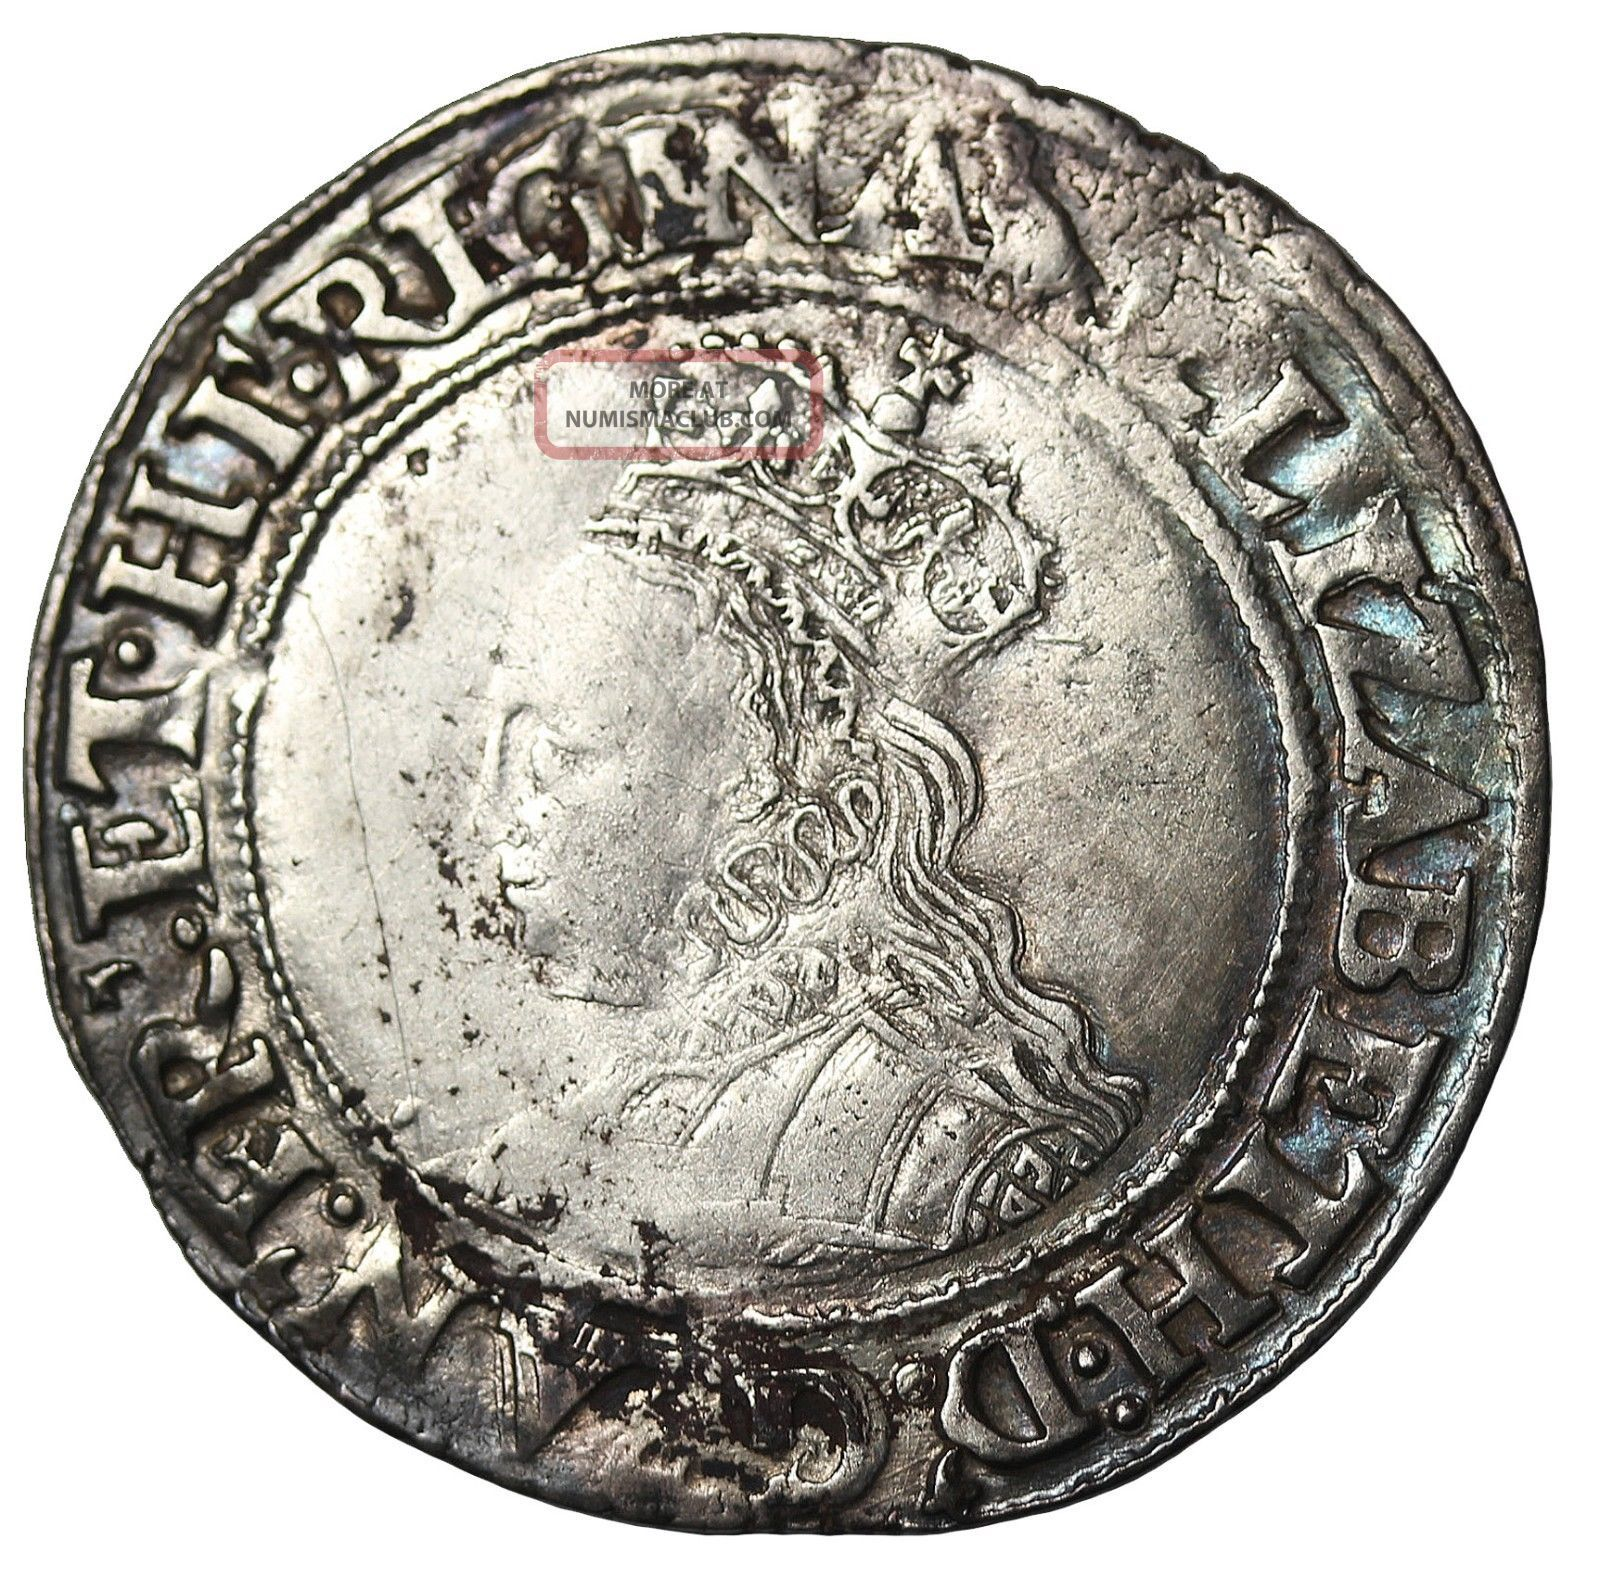 Great Britain 1560 - 61 Ad Elizabeth I Silver Shilling S.  2555 2nd Coinage Bust 1g UK (Great Britain) photo